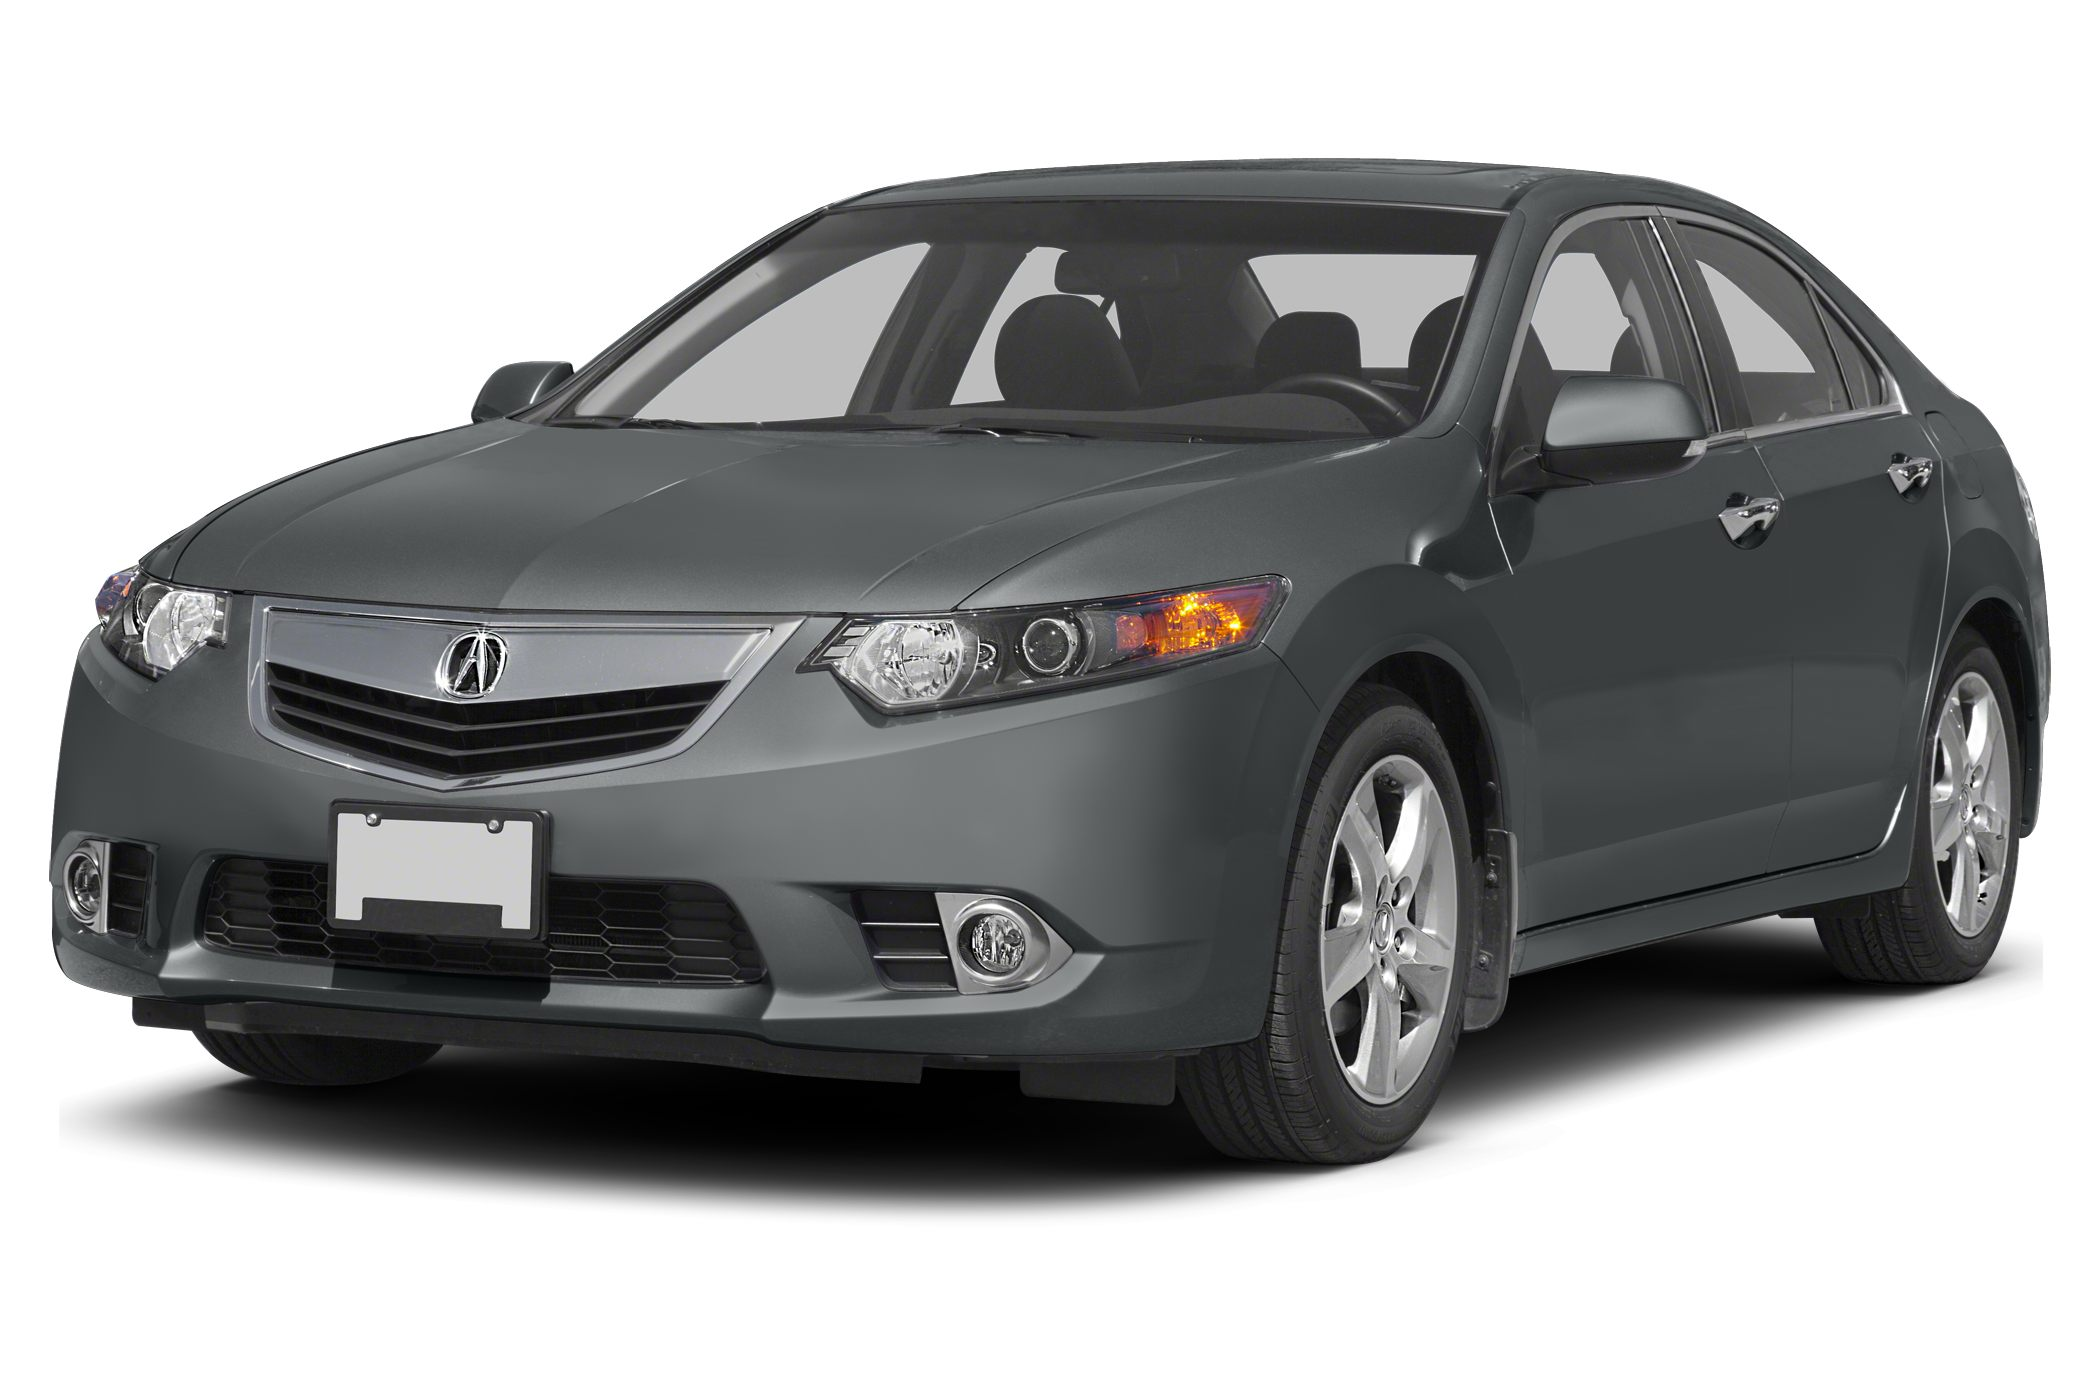 2012 Acura Tsx Safety Features